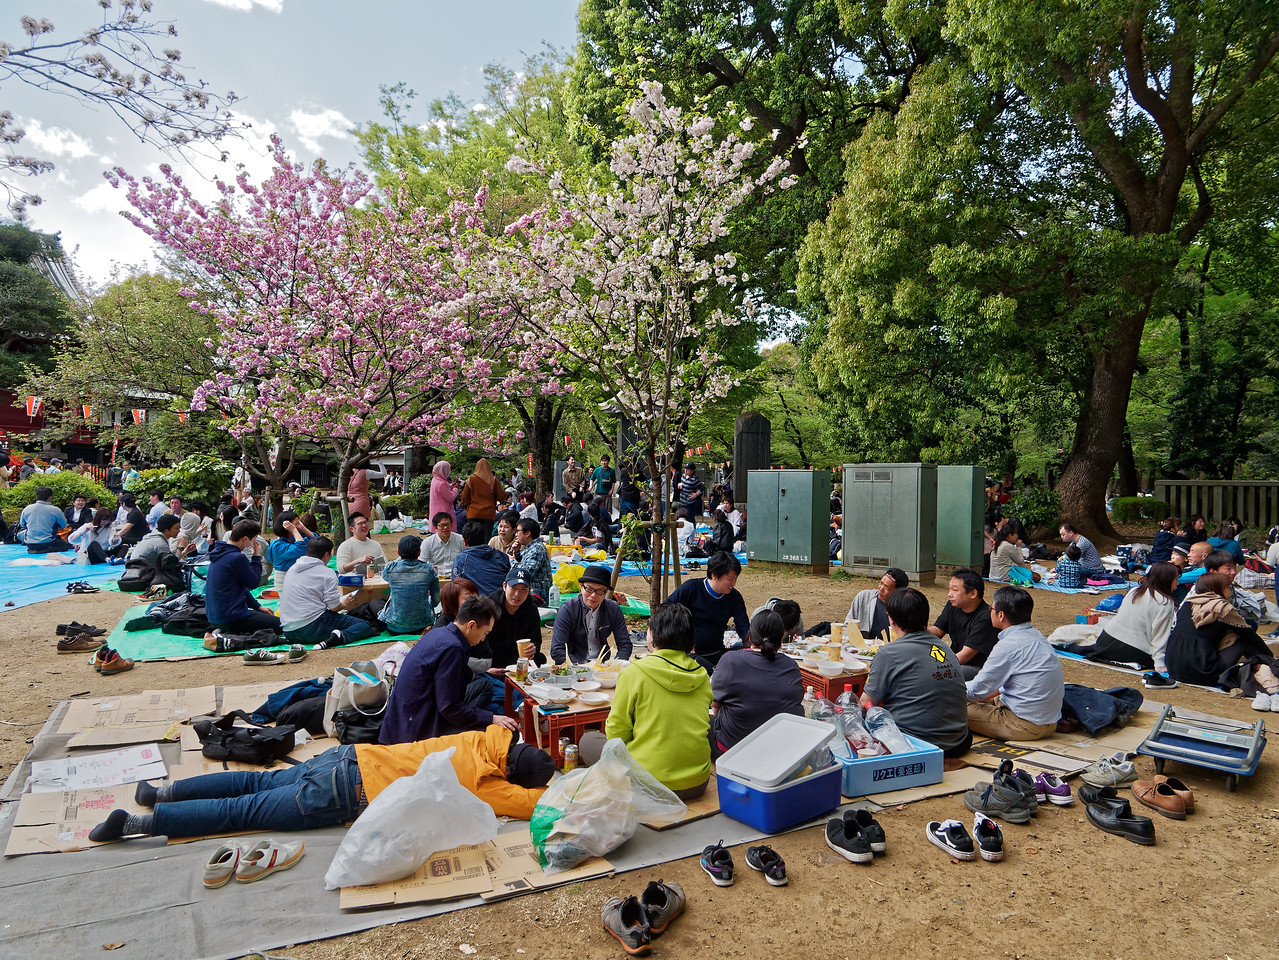 Ueno Park attracts enormous numbers of visitors who enjoy picnicking withn its grounds.